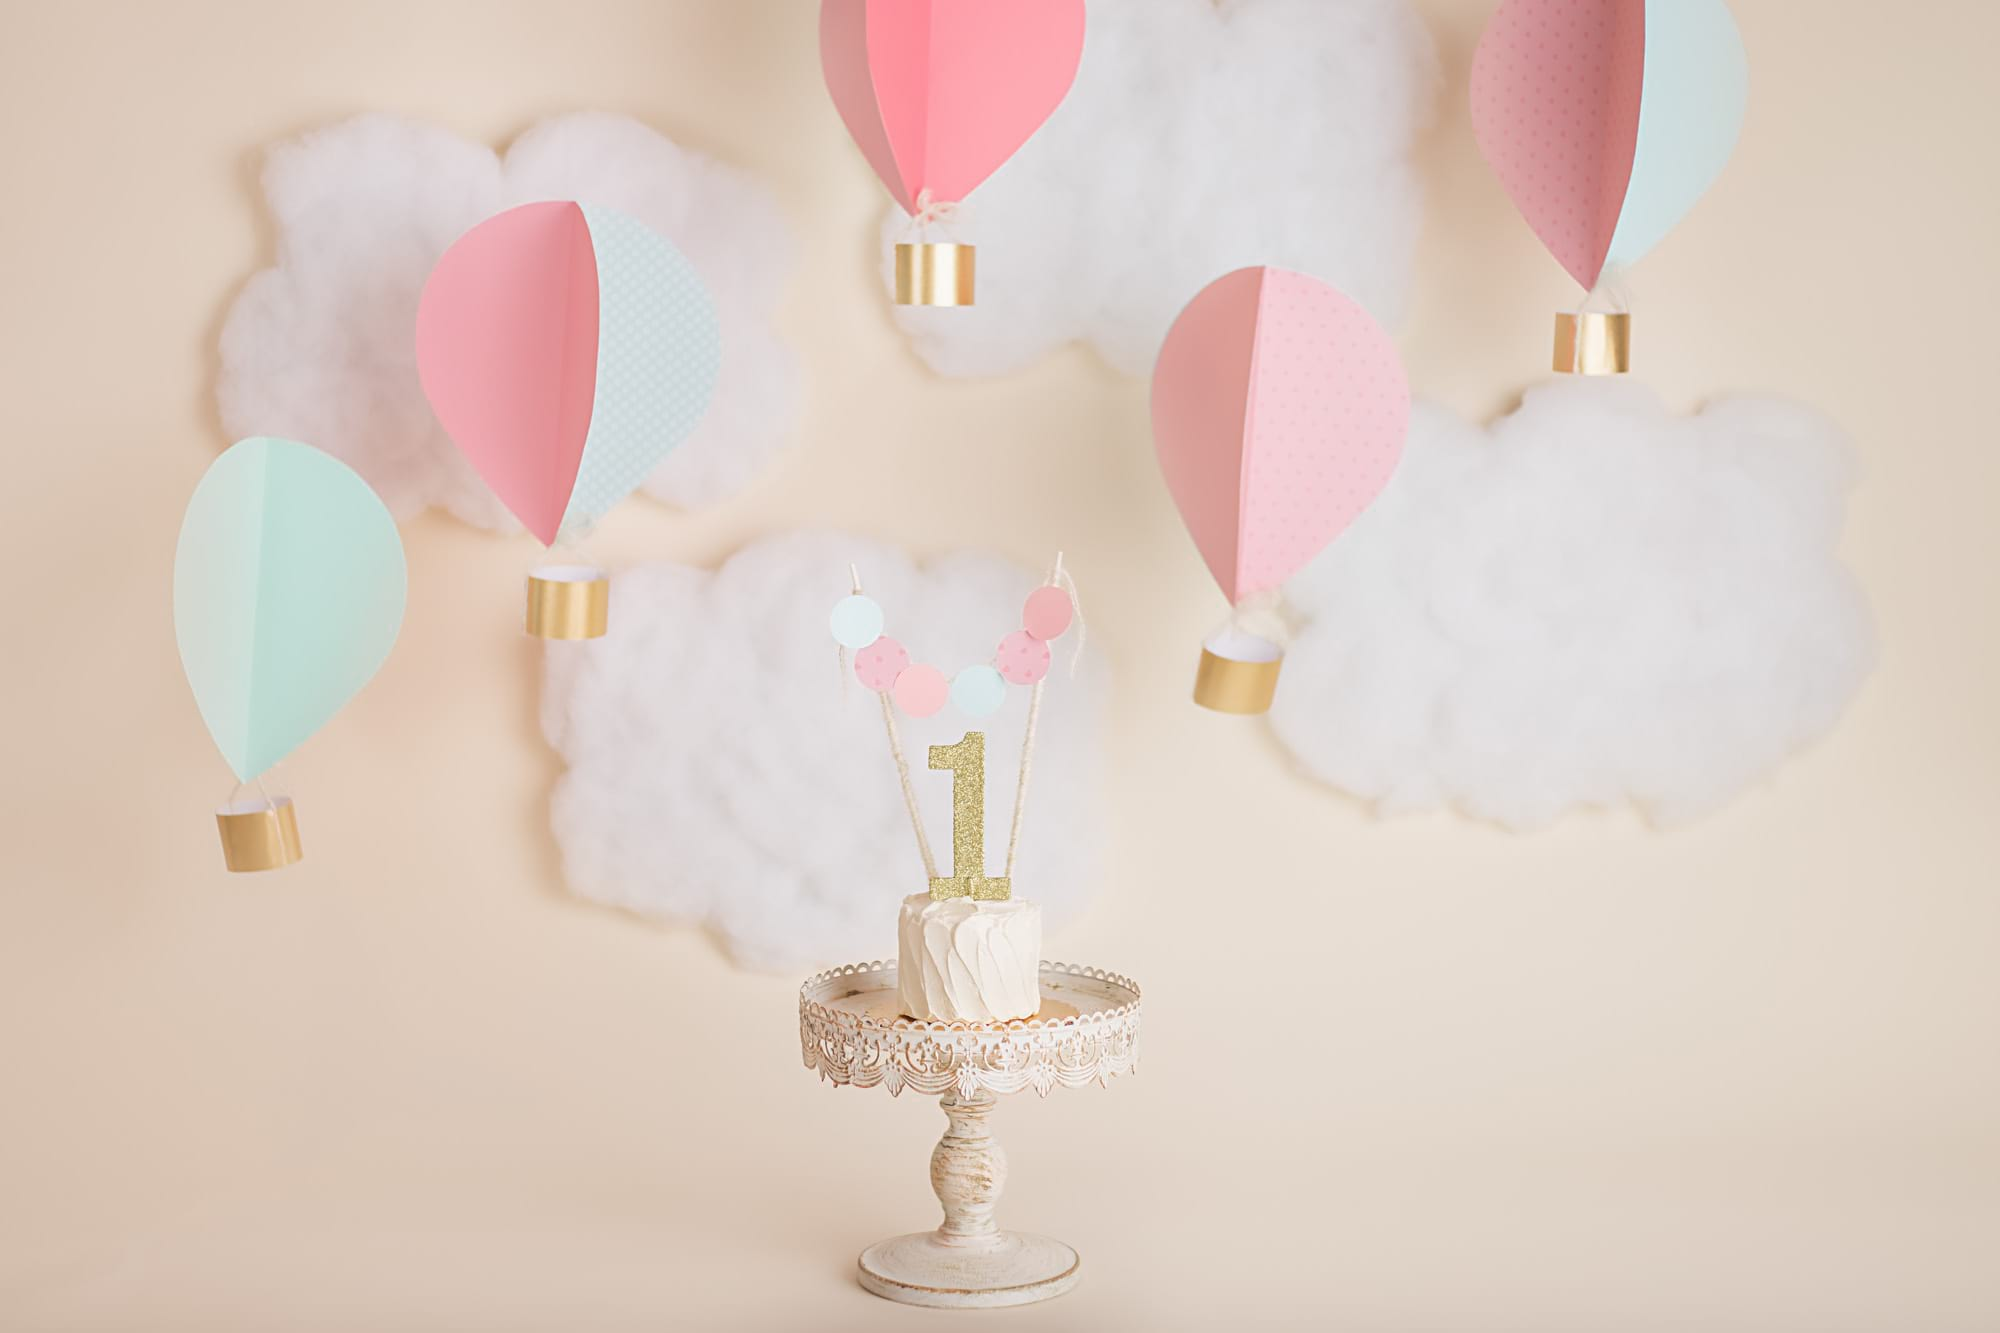 props and setup for a hot air balloon cake smash session